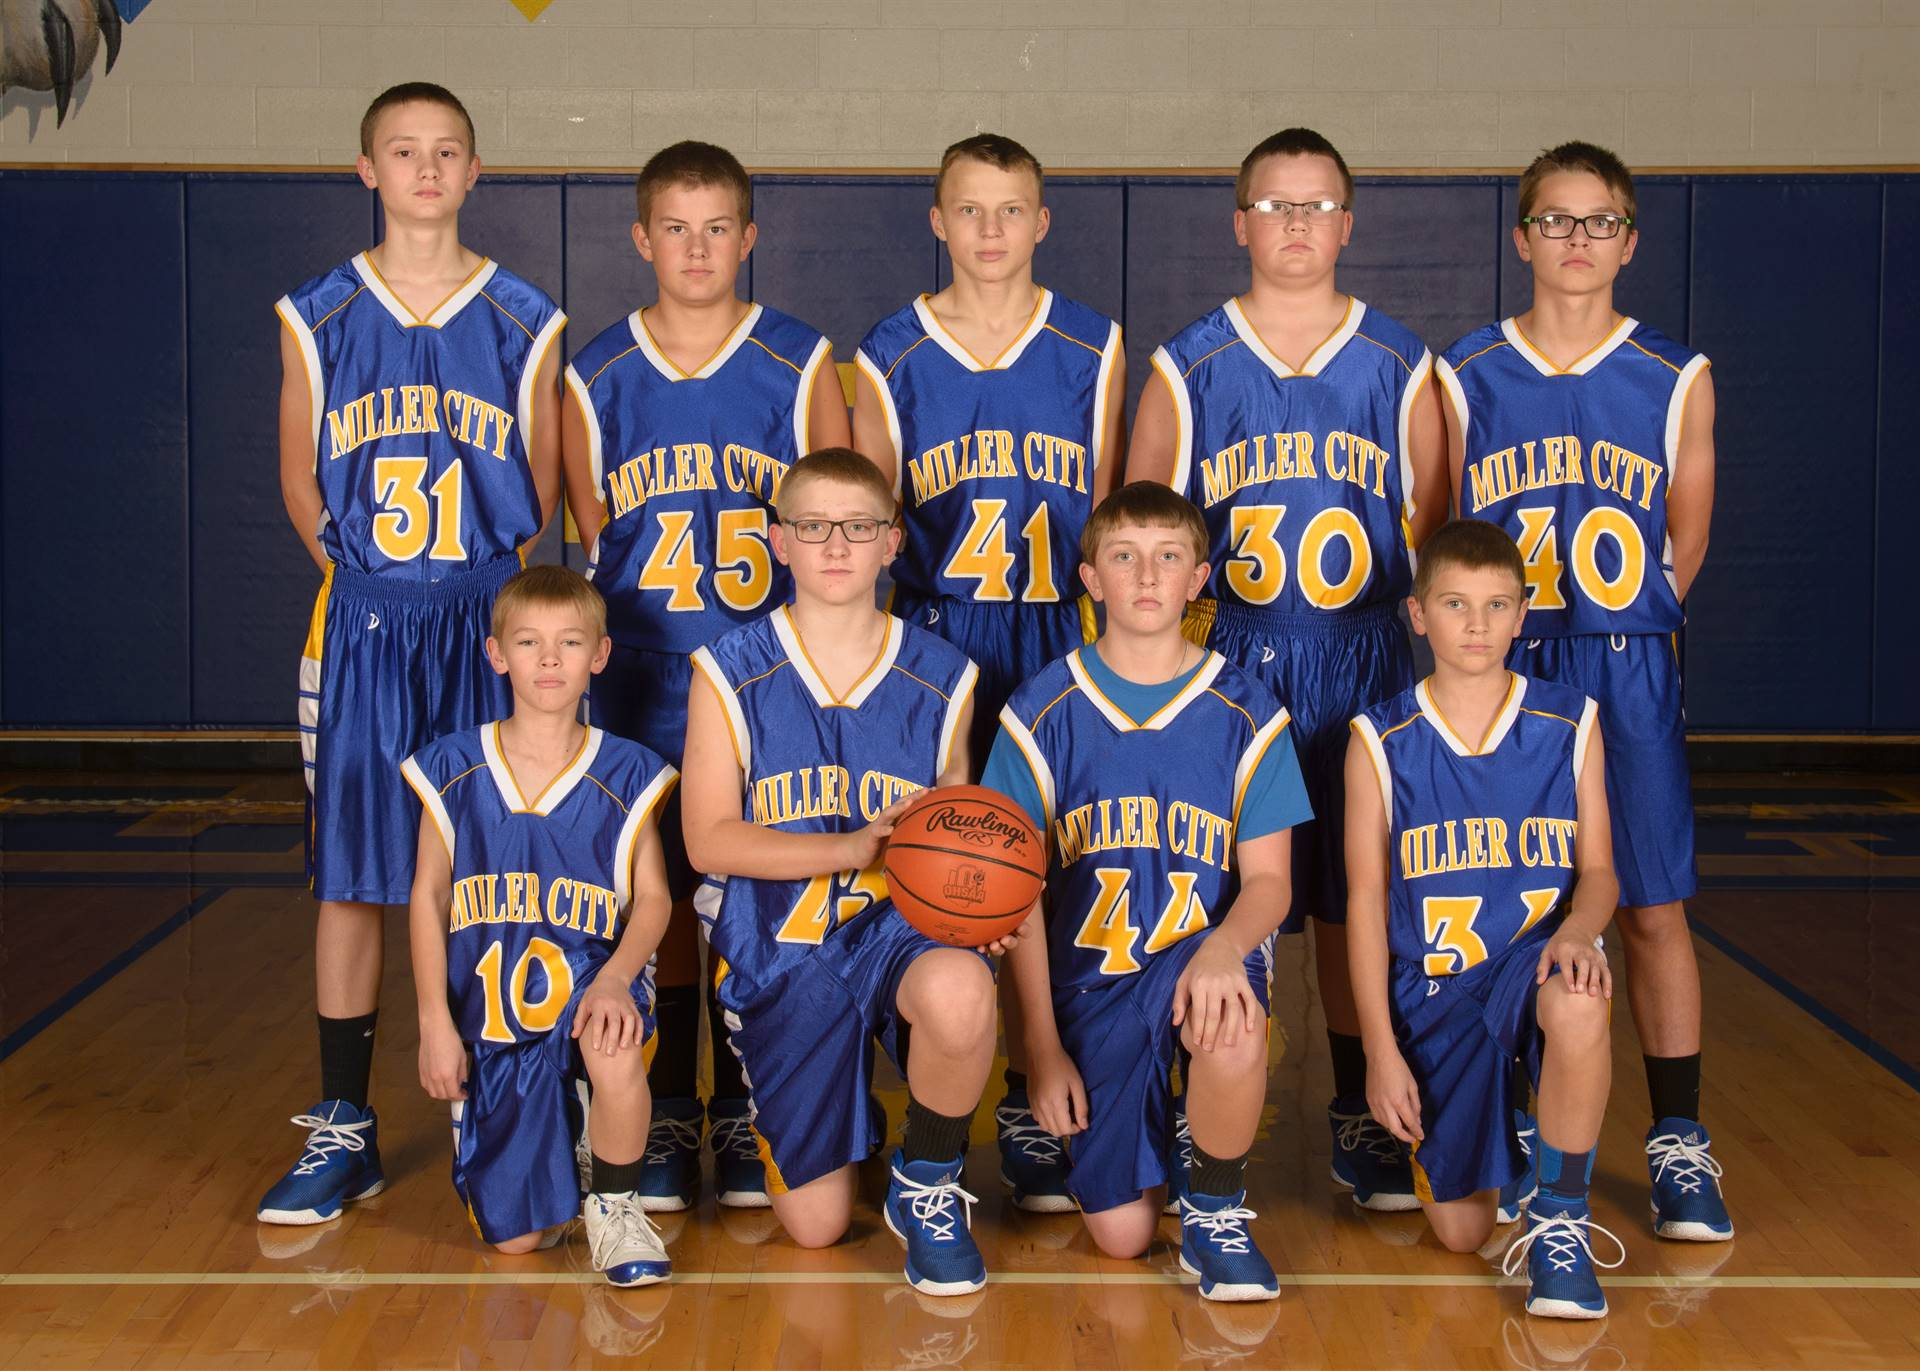 7th Grade Boys Basketball Team Photo